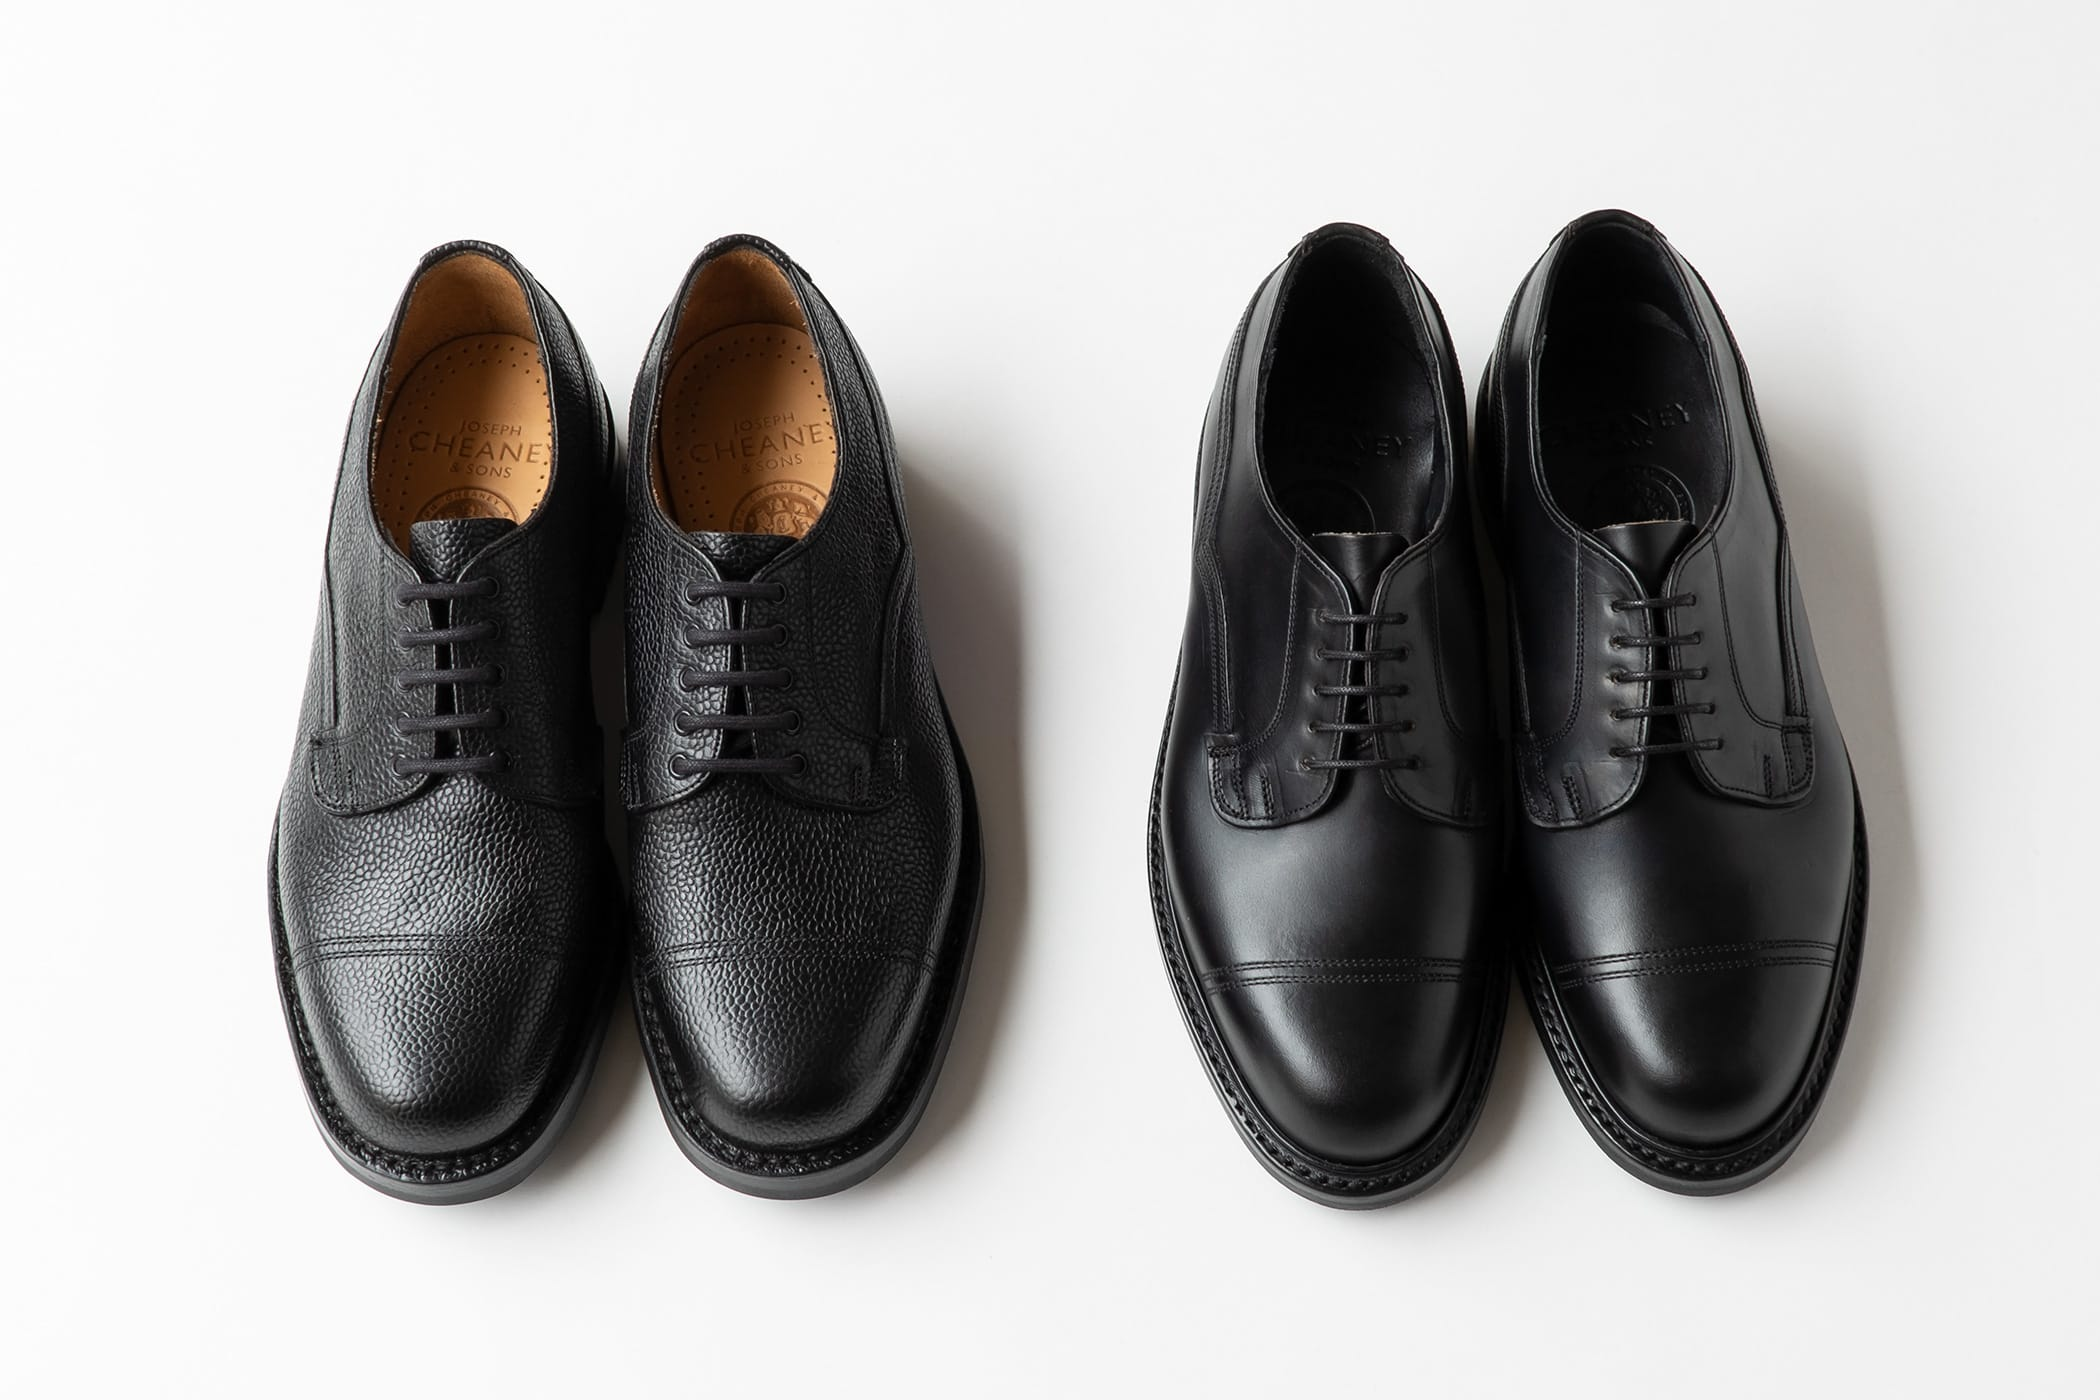 Military shoes of BRITISH MADE JOSEPH CHEANEY come up with hybrid specifications